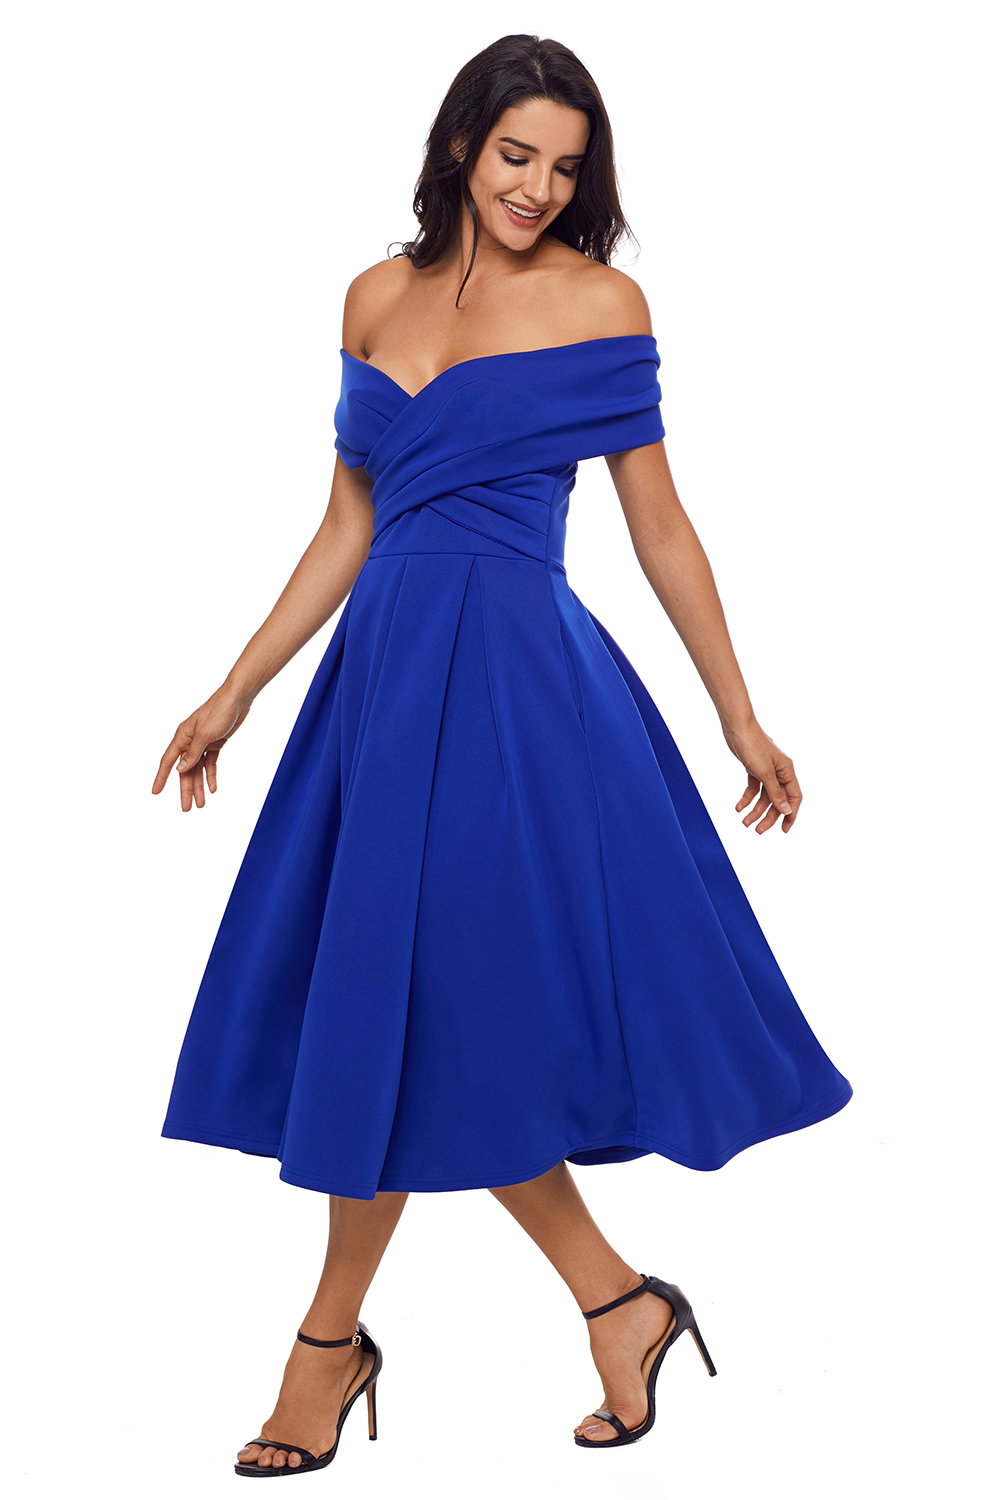 US$33.75 Zkess Royal Blue Crossed Off Shoulder Fit-and-flare Prom Dress